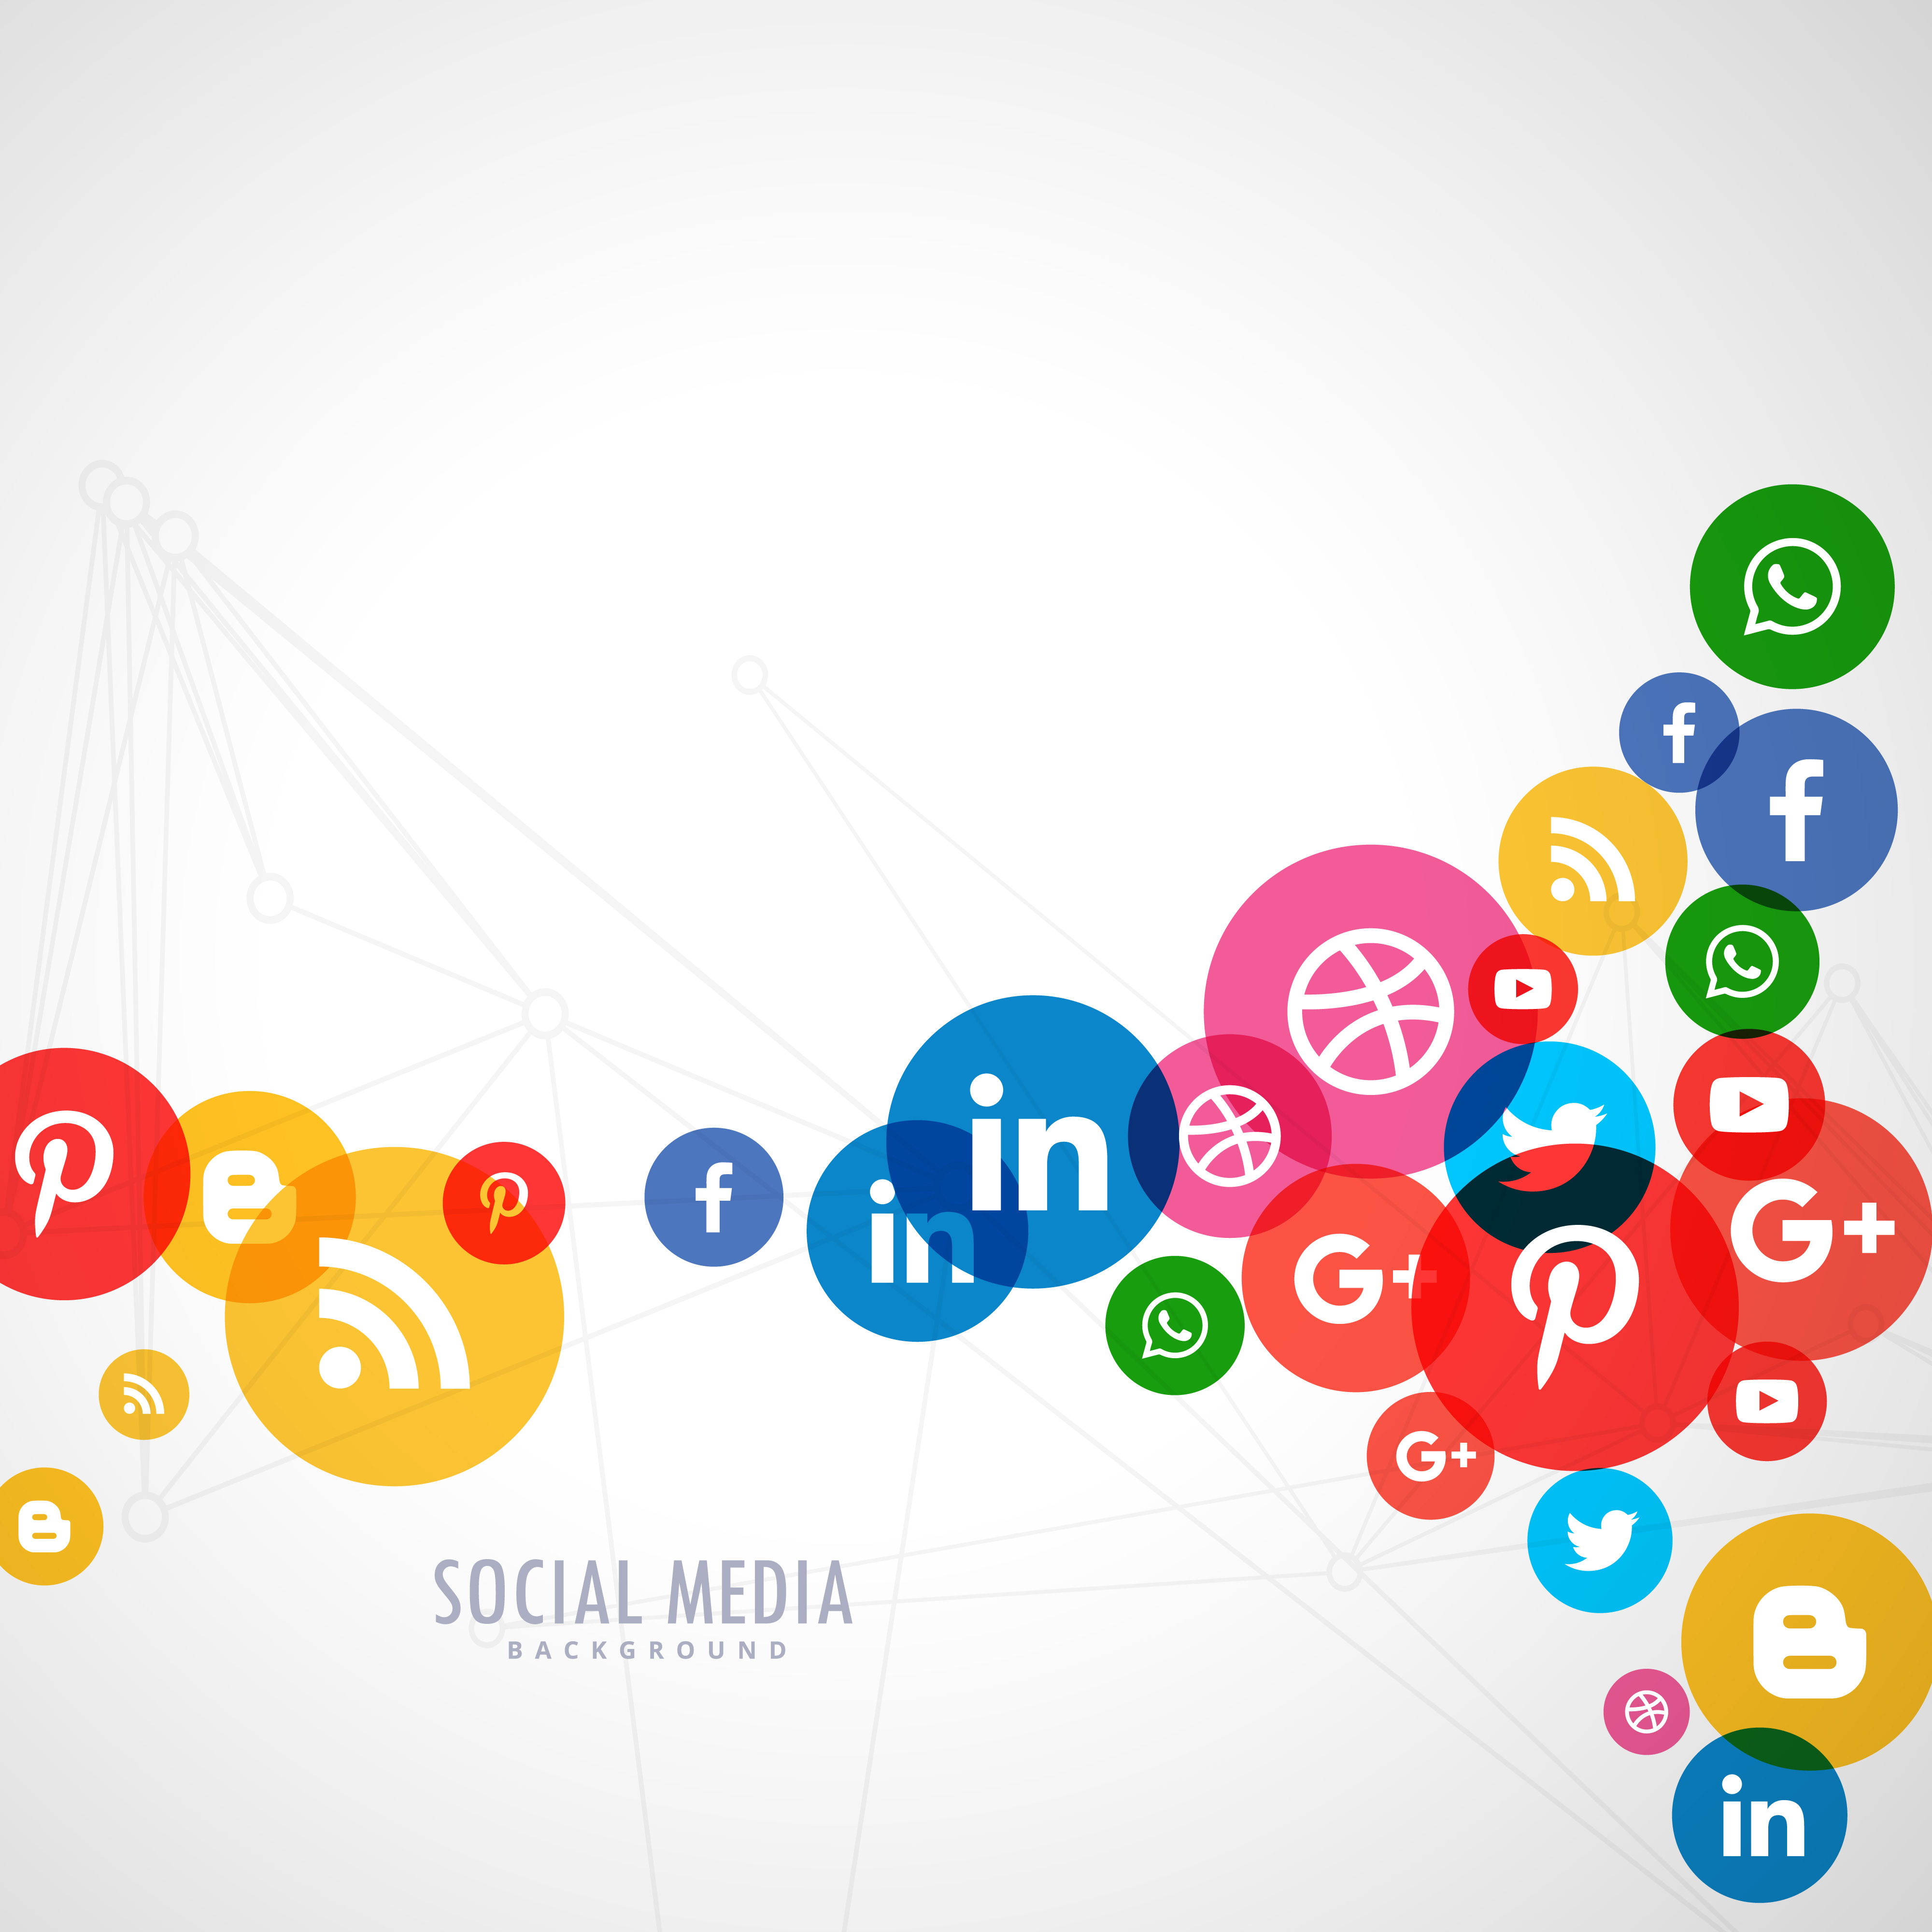 vector-social-media-logo-background.jpg